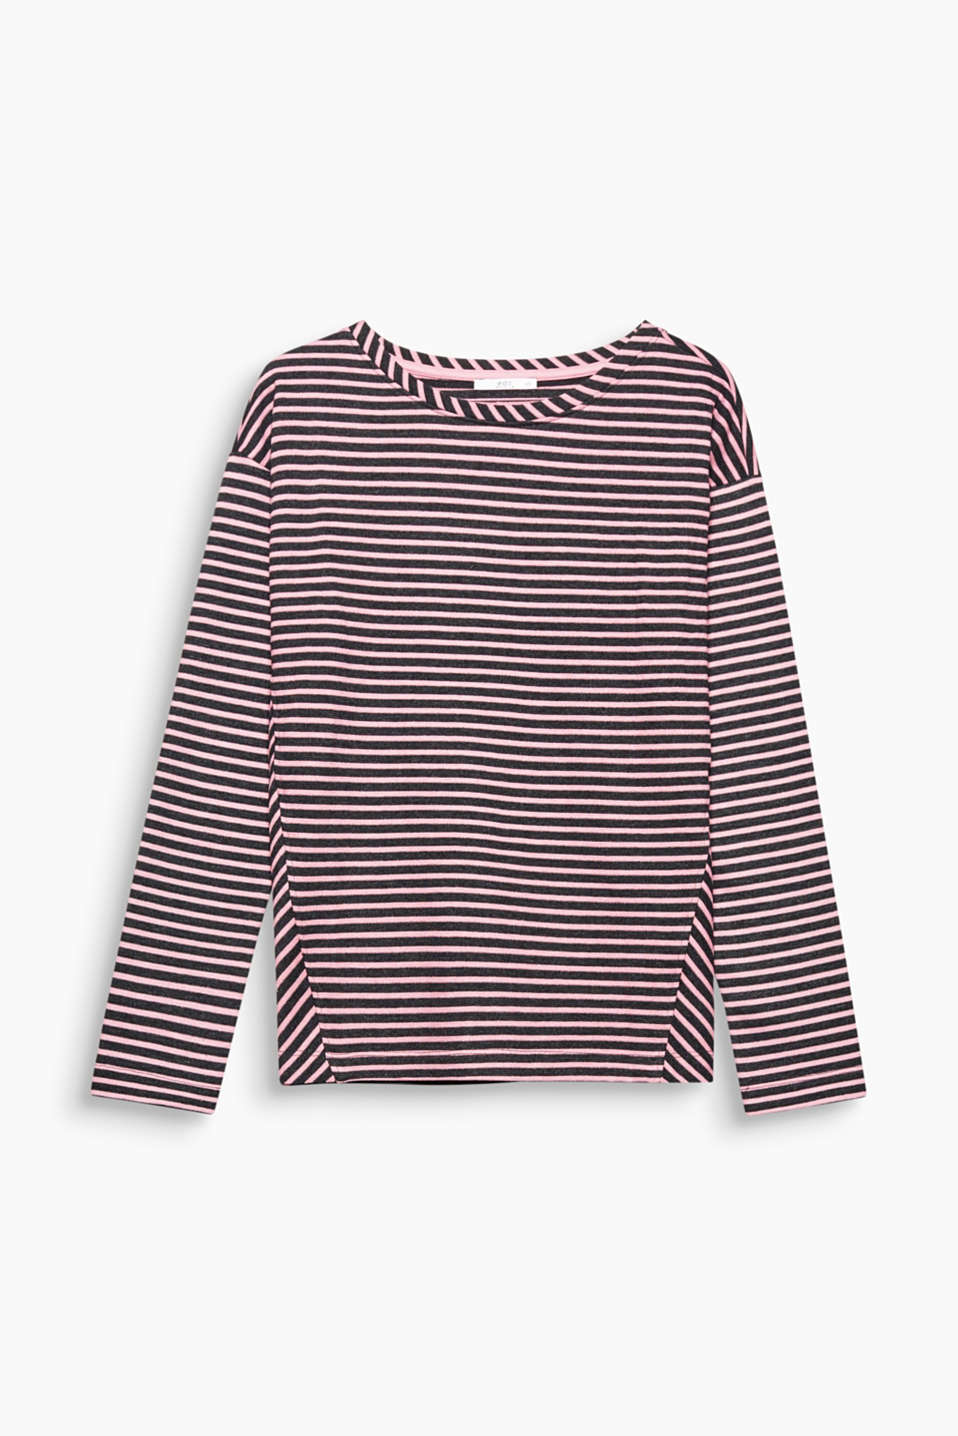 This sweatshirt offers stripes like you have never seen them before on textured piqué in a new silhouette!